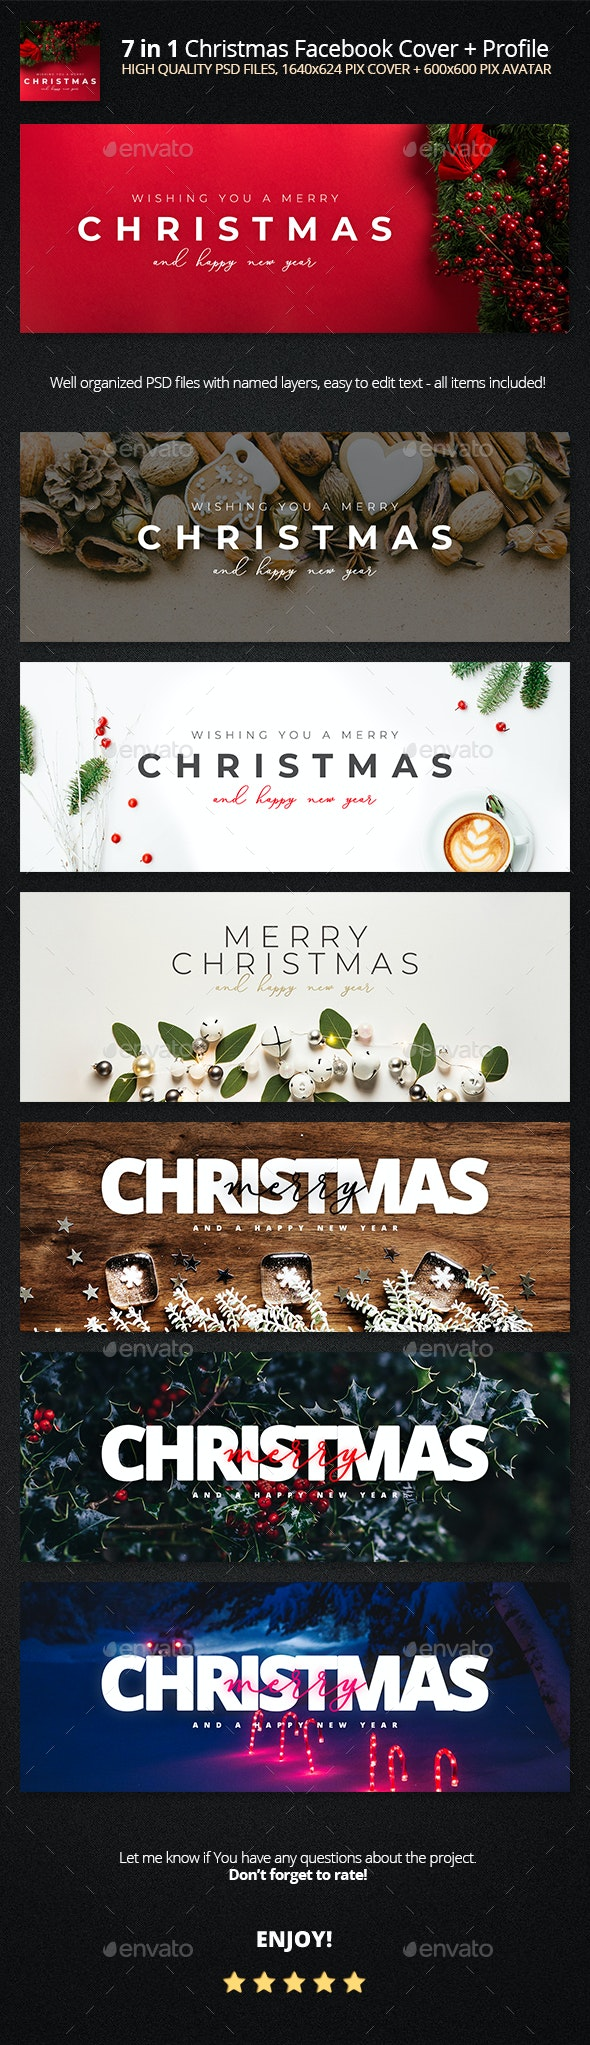 7in1 Minimalistic Christmas FB Cover Pack - Facebook Timeline Covers Social Media